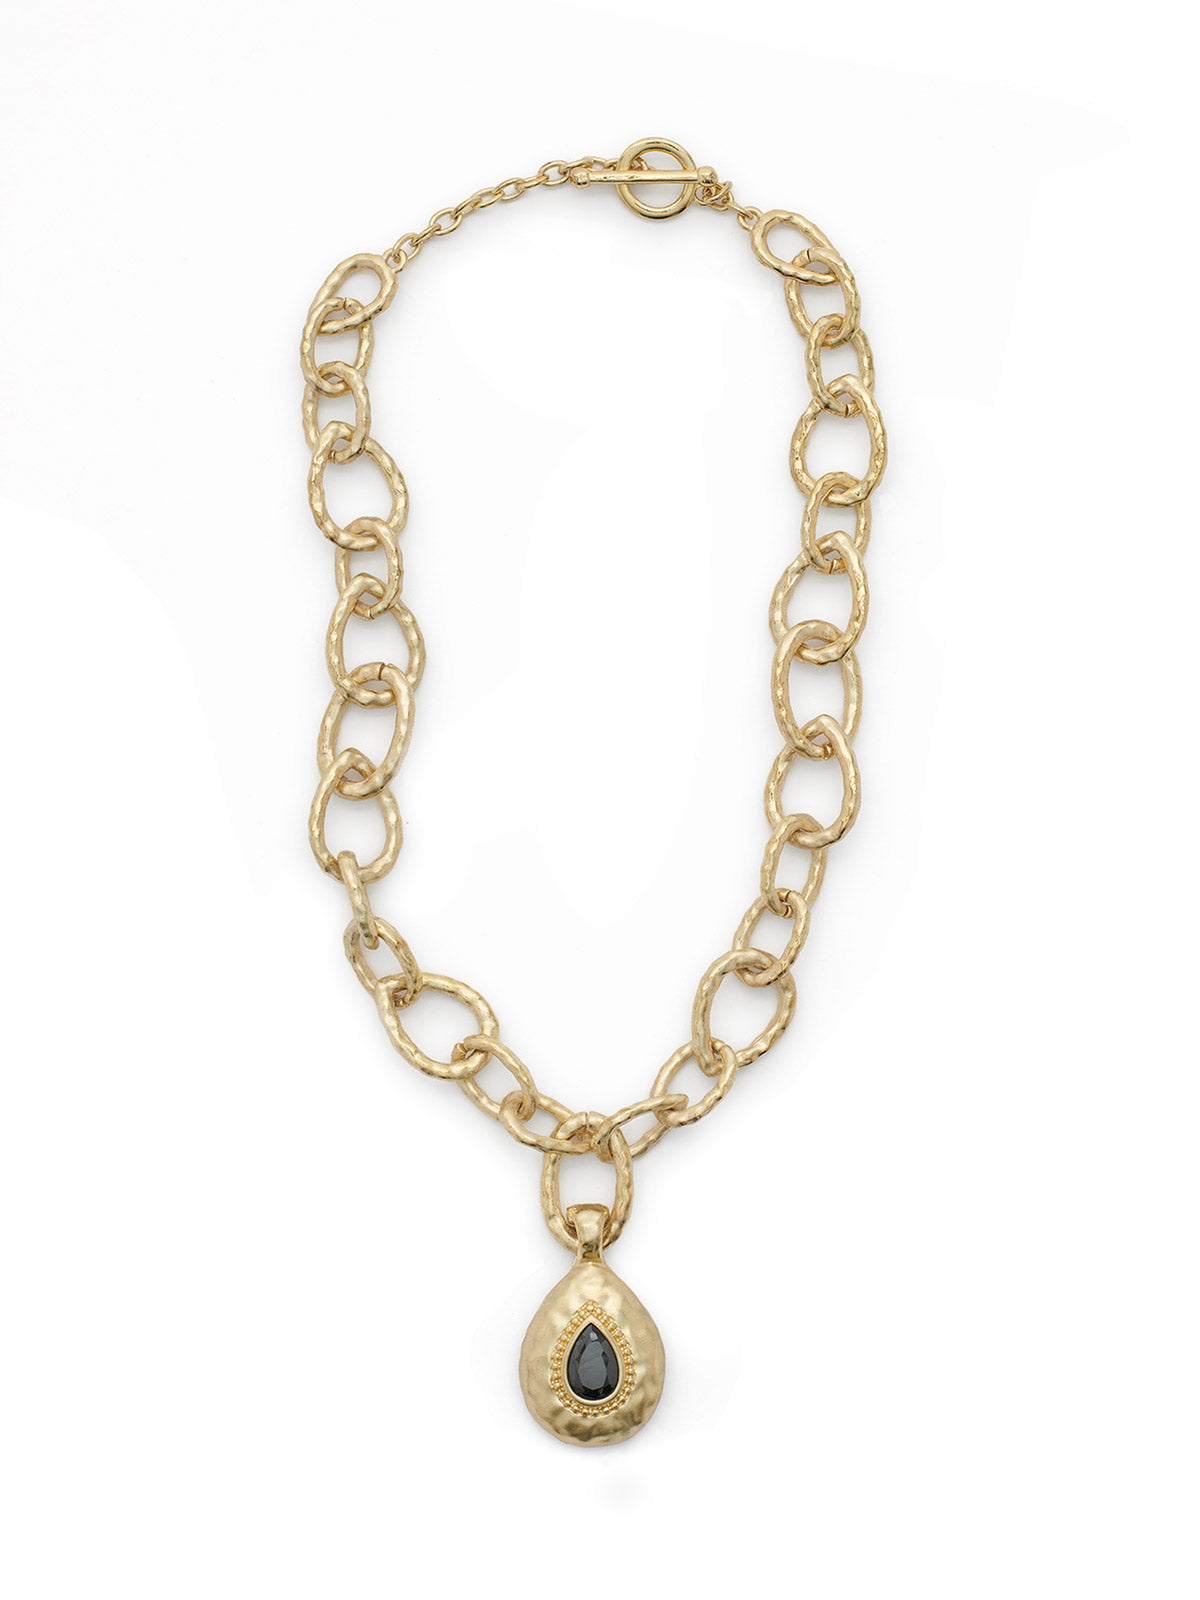 Hammered Link Necklace with Removable Pendant